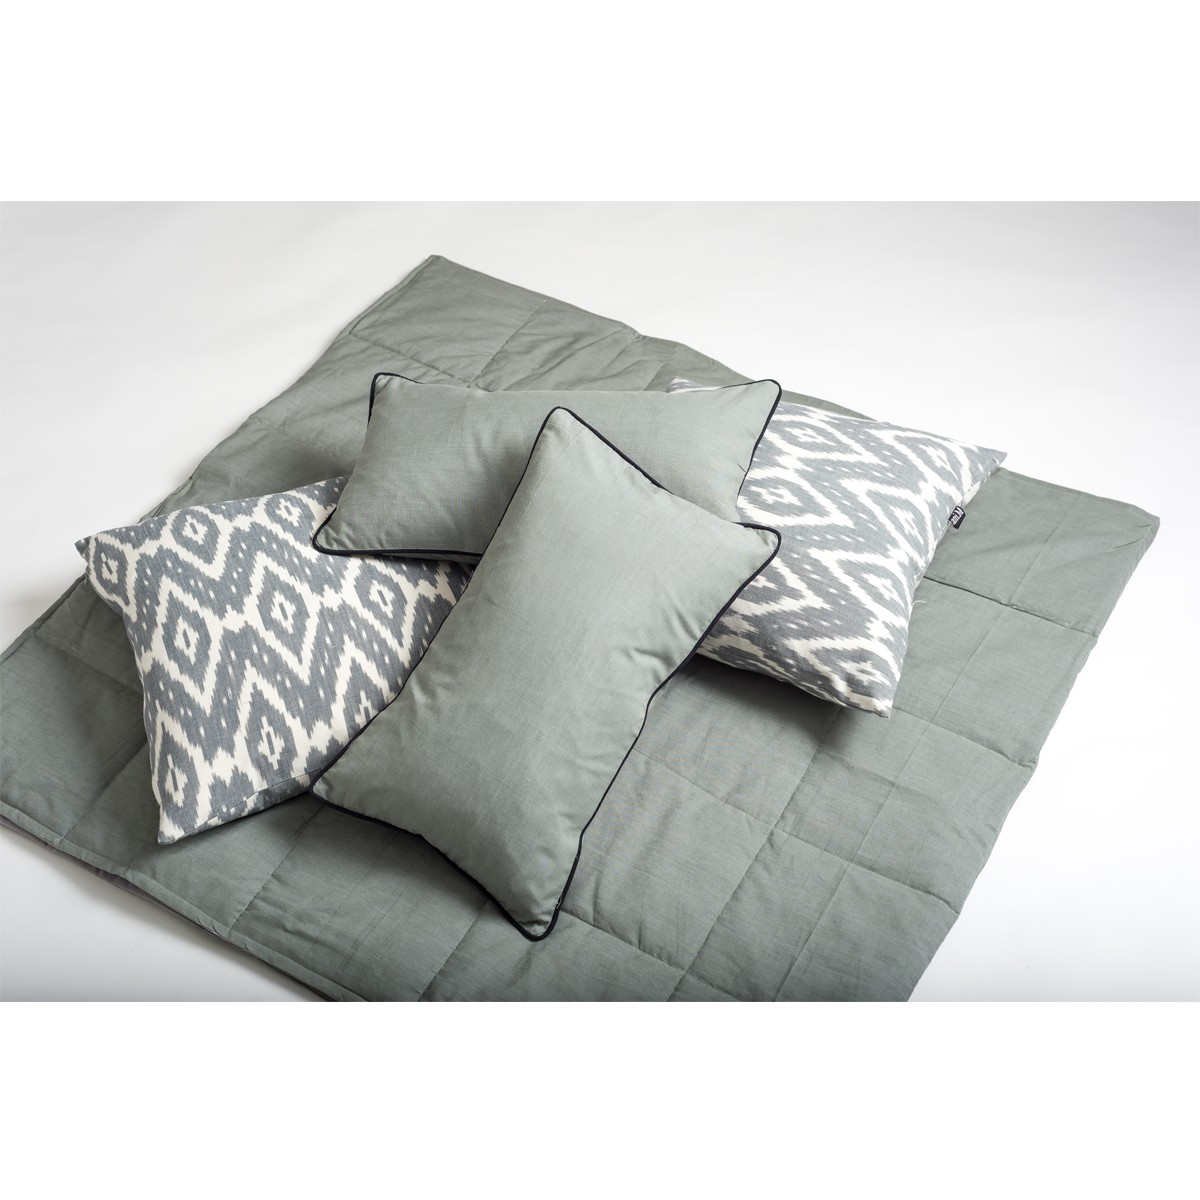 Mist Cushion Set for Bedroom - Grey